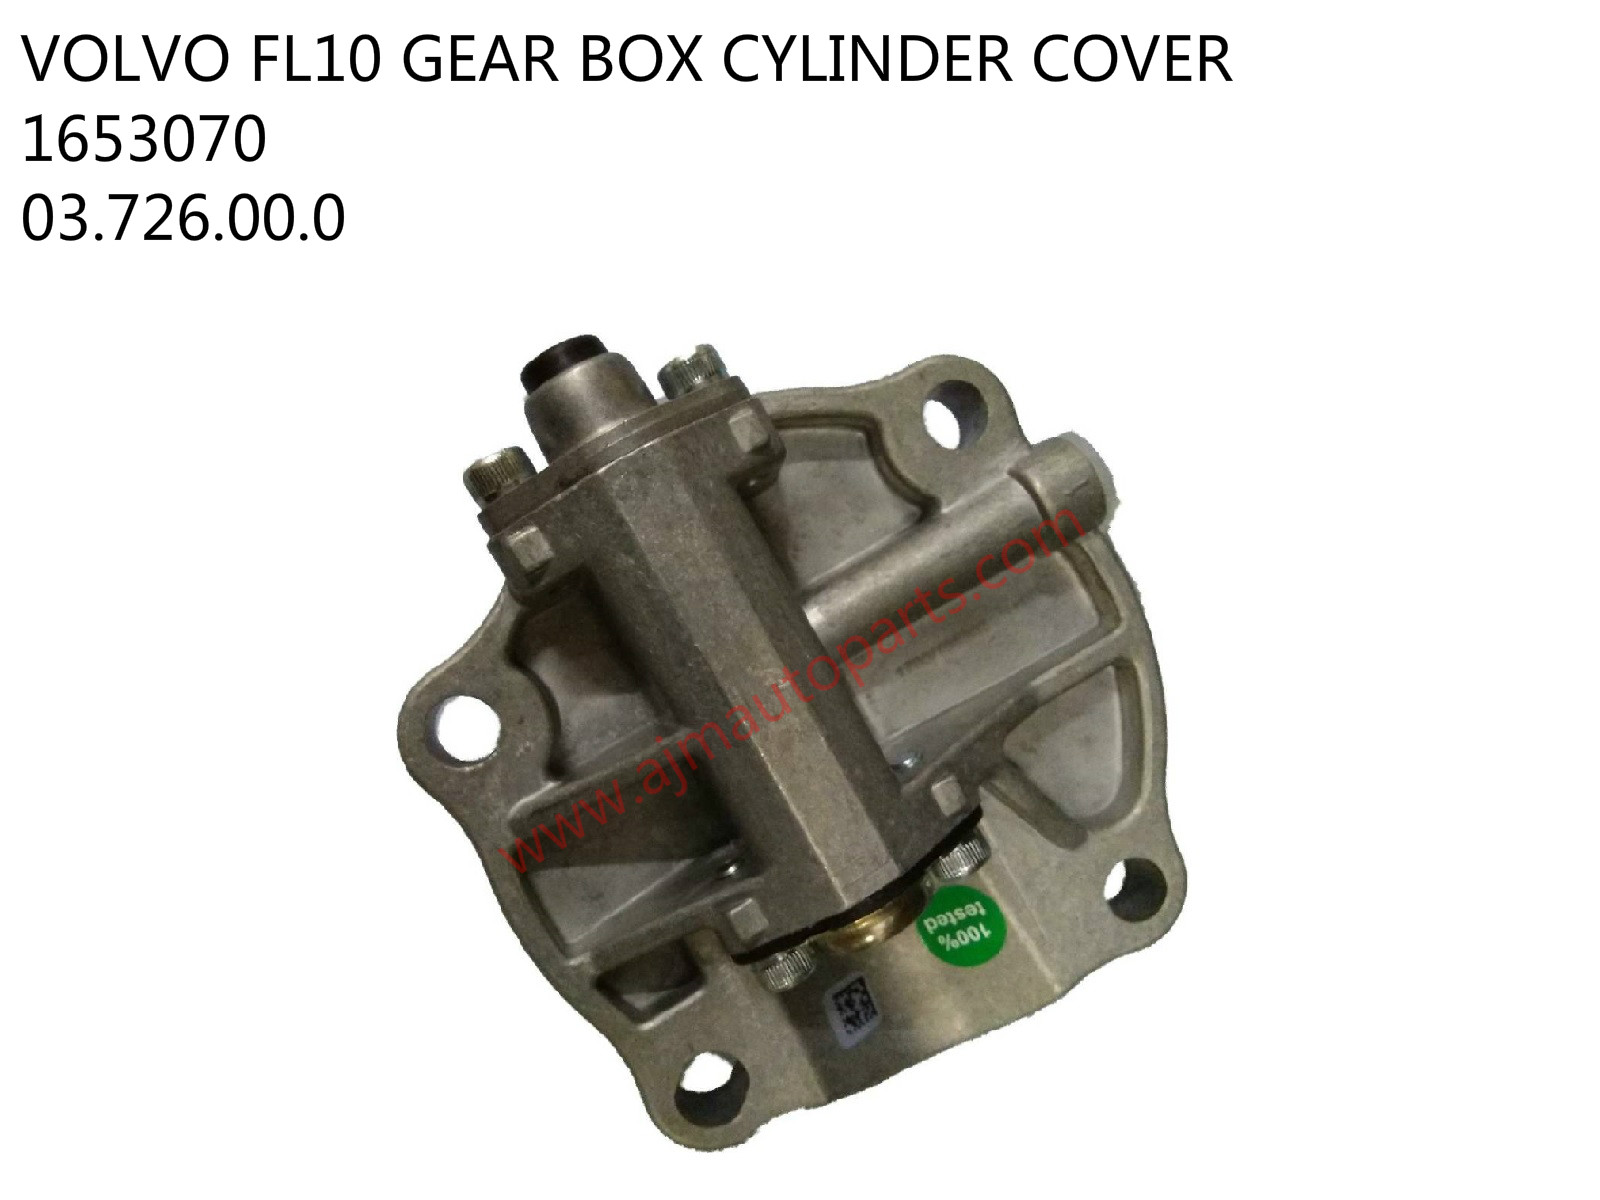 VOLVO FL10 GEAR BOX CYLINDER COVER-1653070